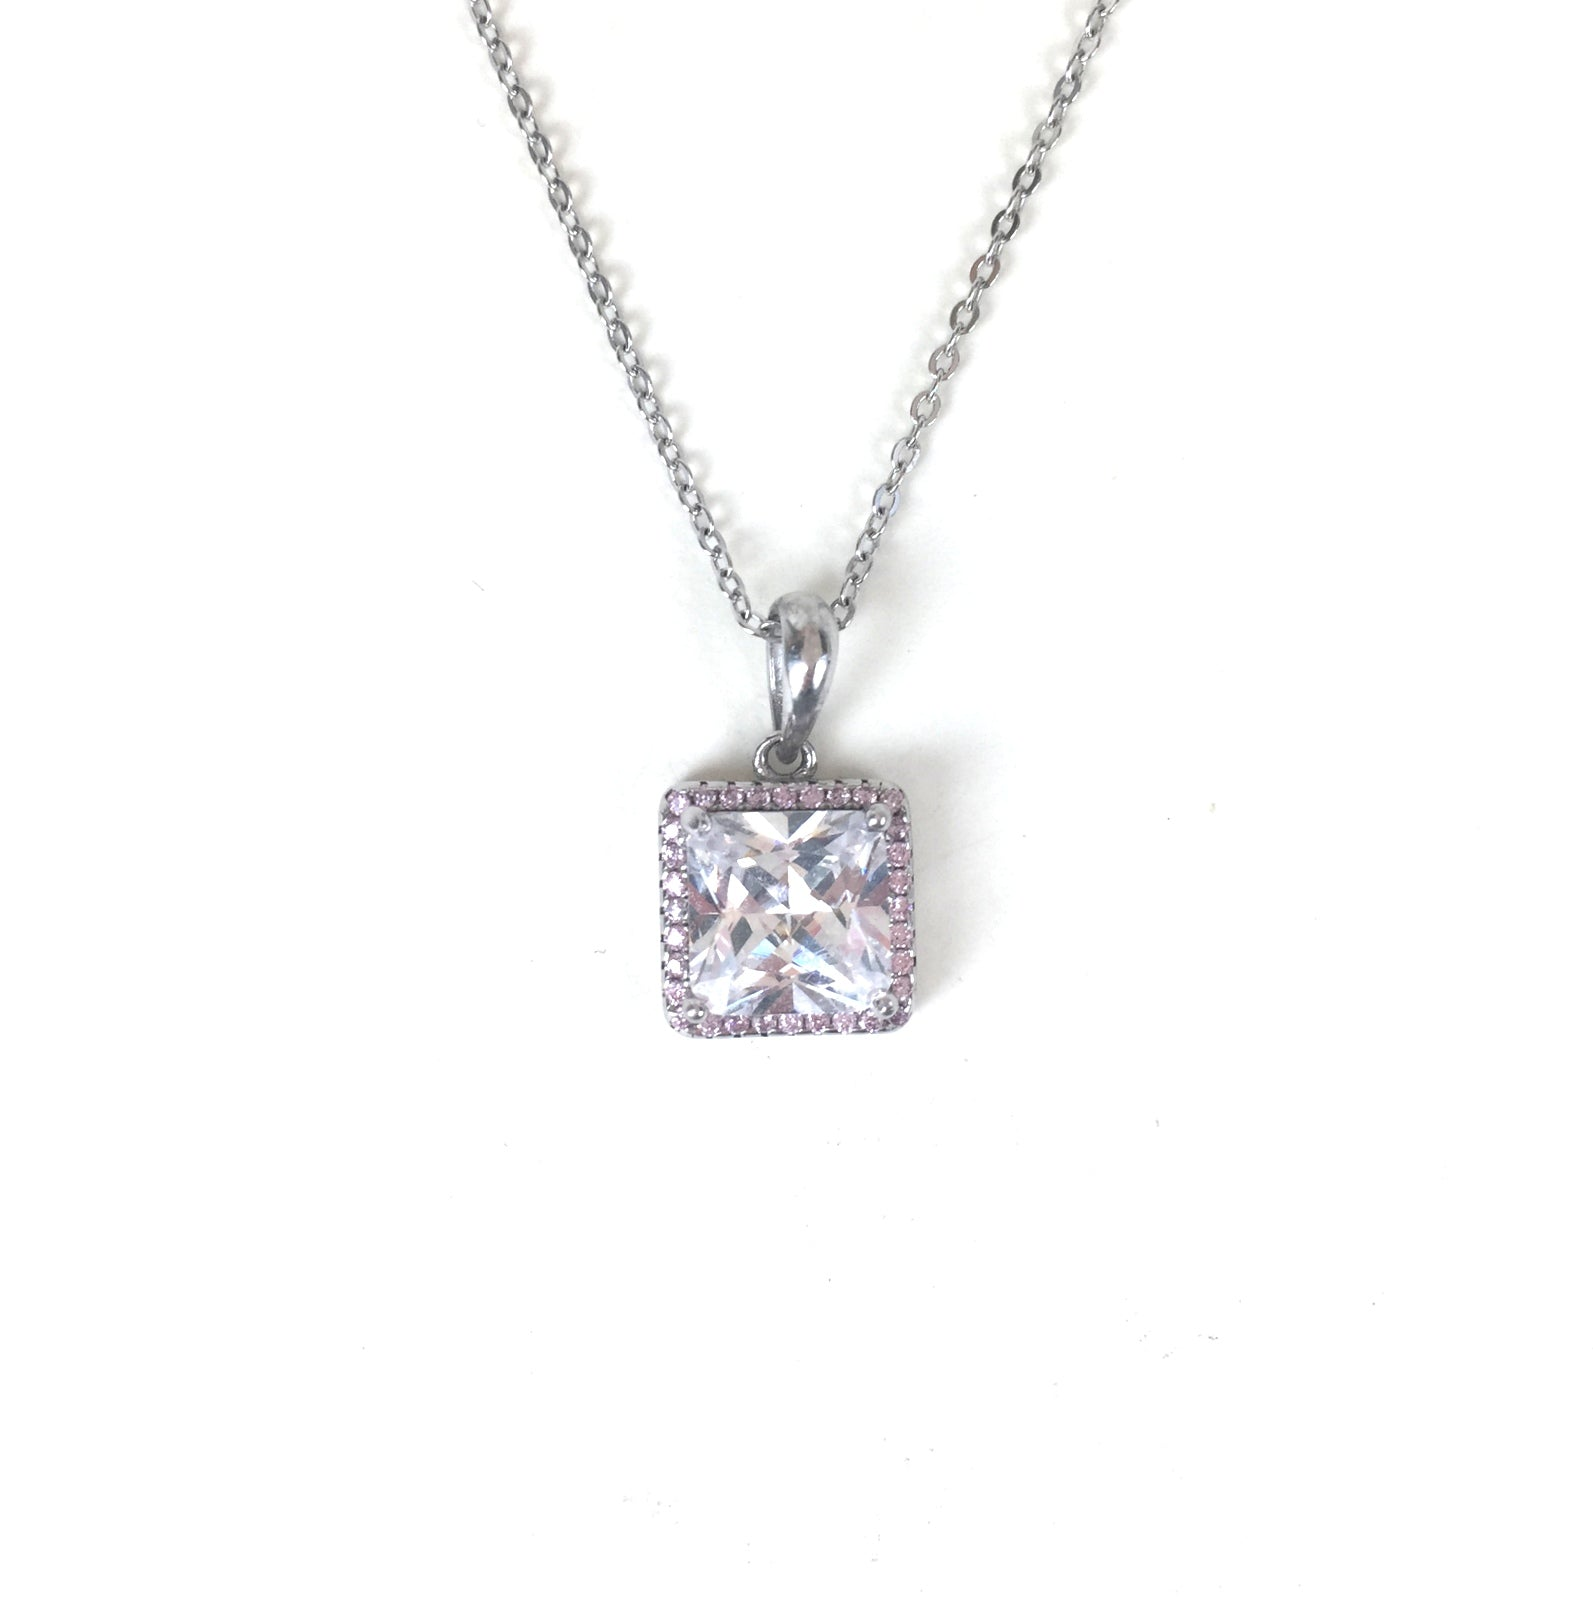 CLASSIC SQUARE PAVE CZ STERLING SILVER NECKLACE